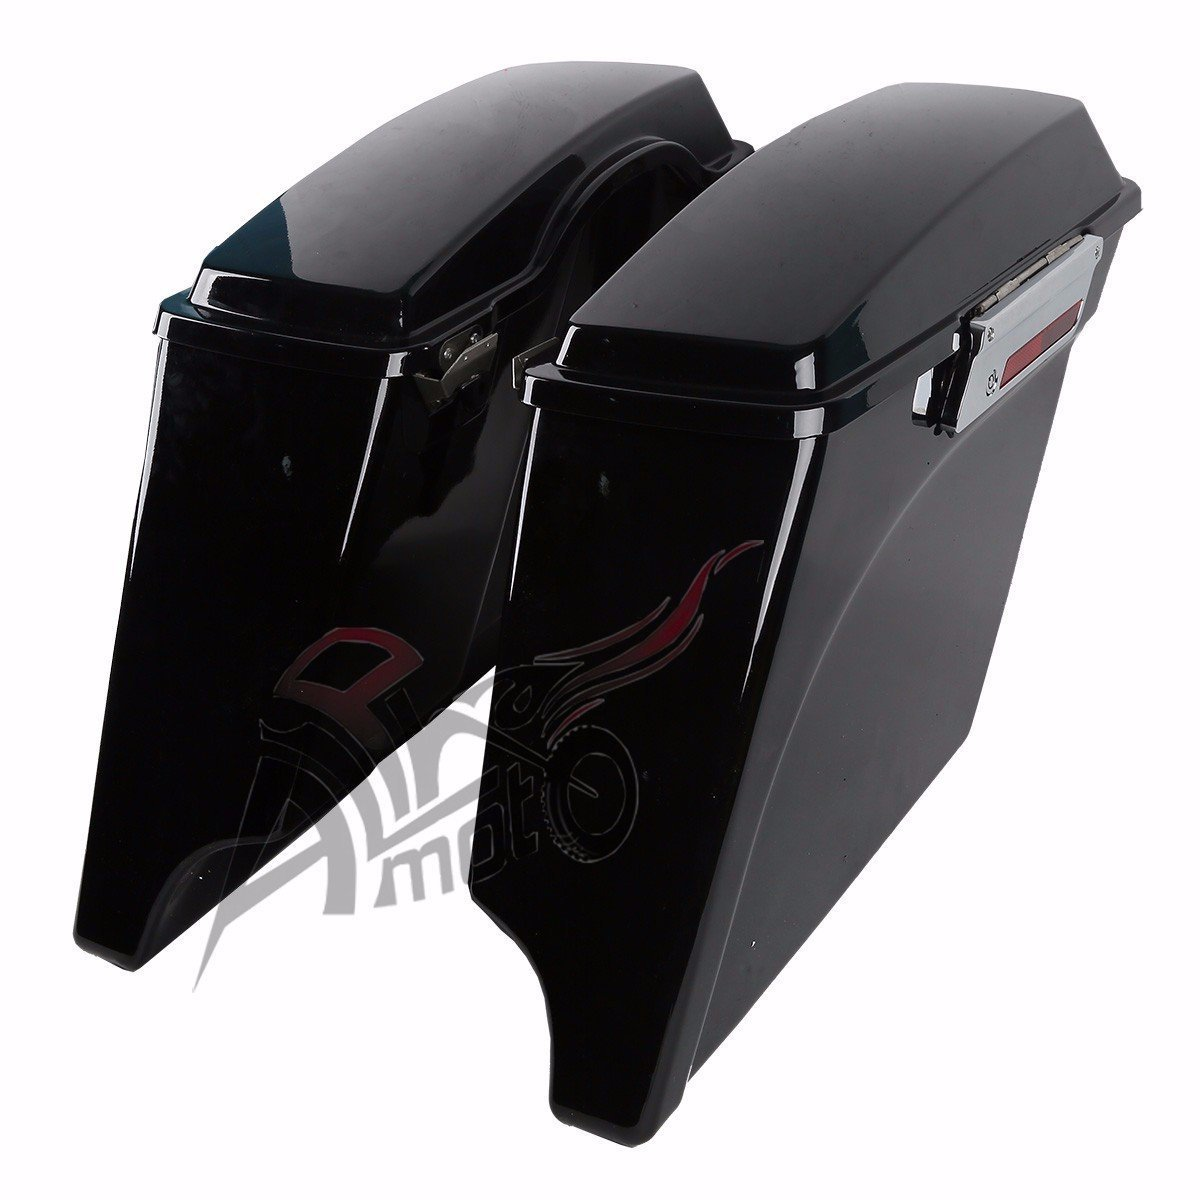 New 5'' Vivid Black Stretched Extended Saddlebags Saddlebag with Lid Latch Keys For Harley Touring FLH FLT Electra Glide Road king Ultra Street 1994 - 2013 by alphamoto